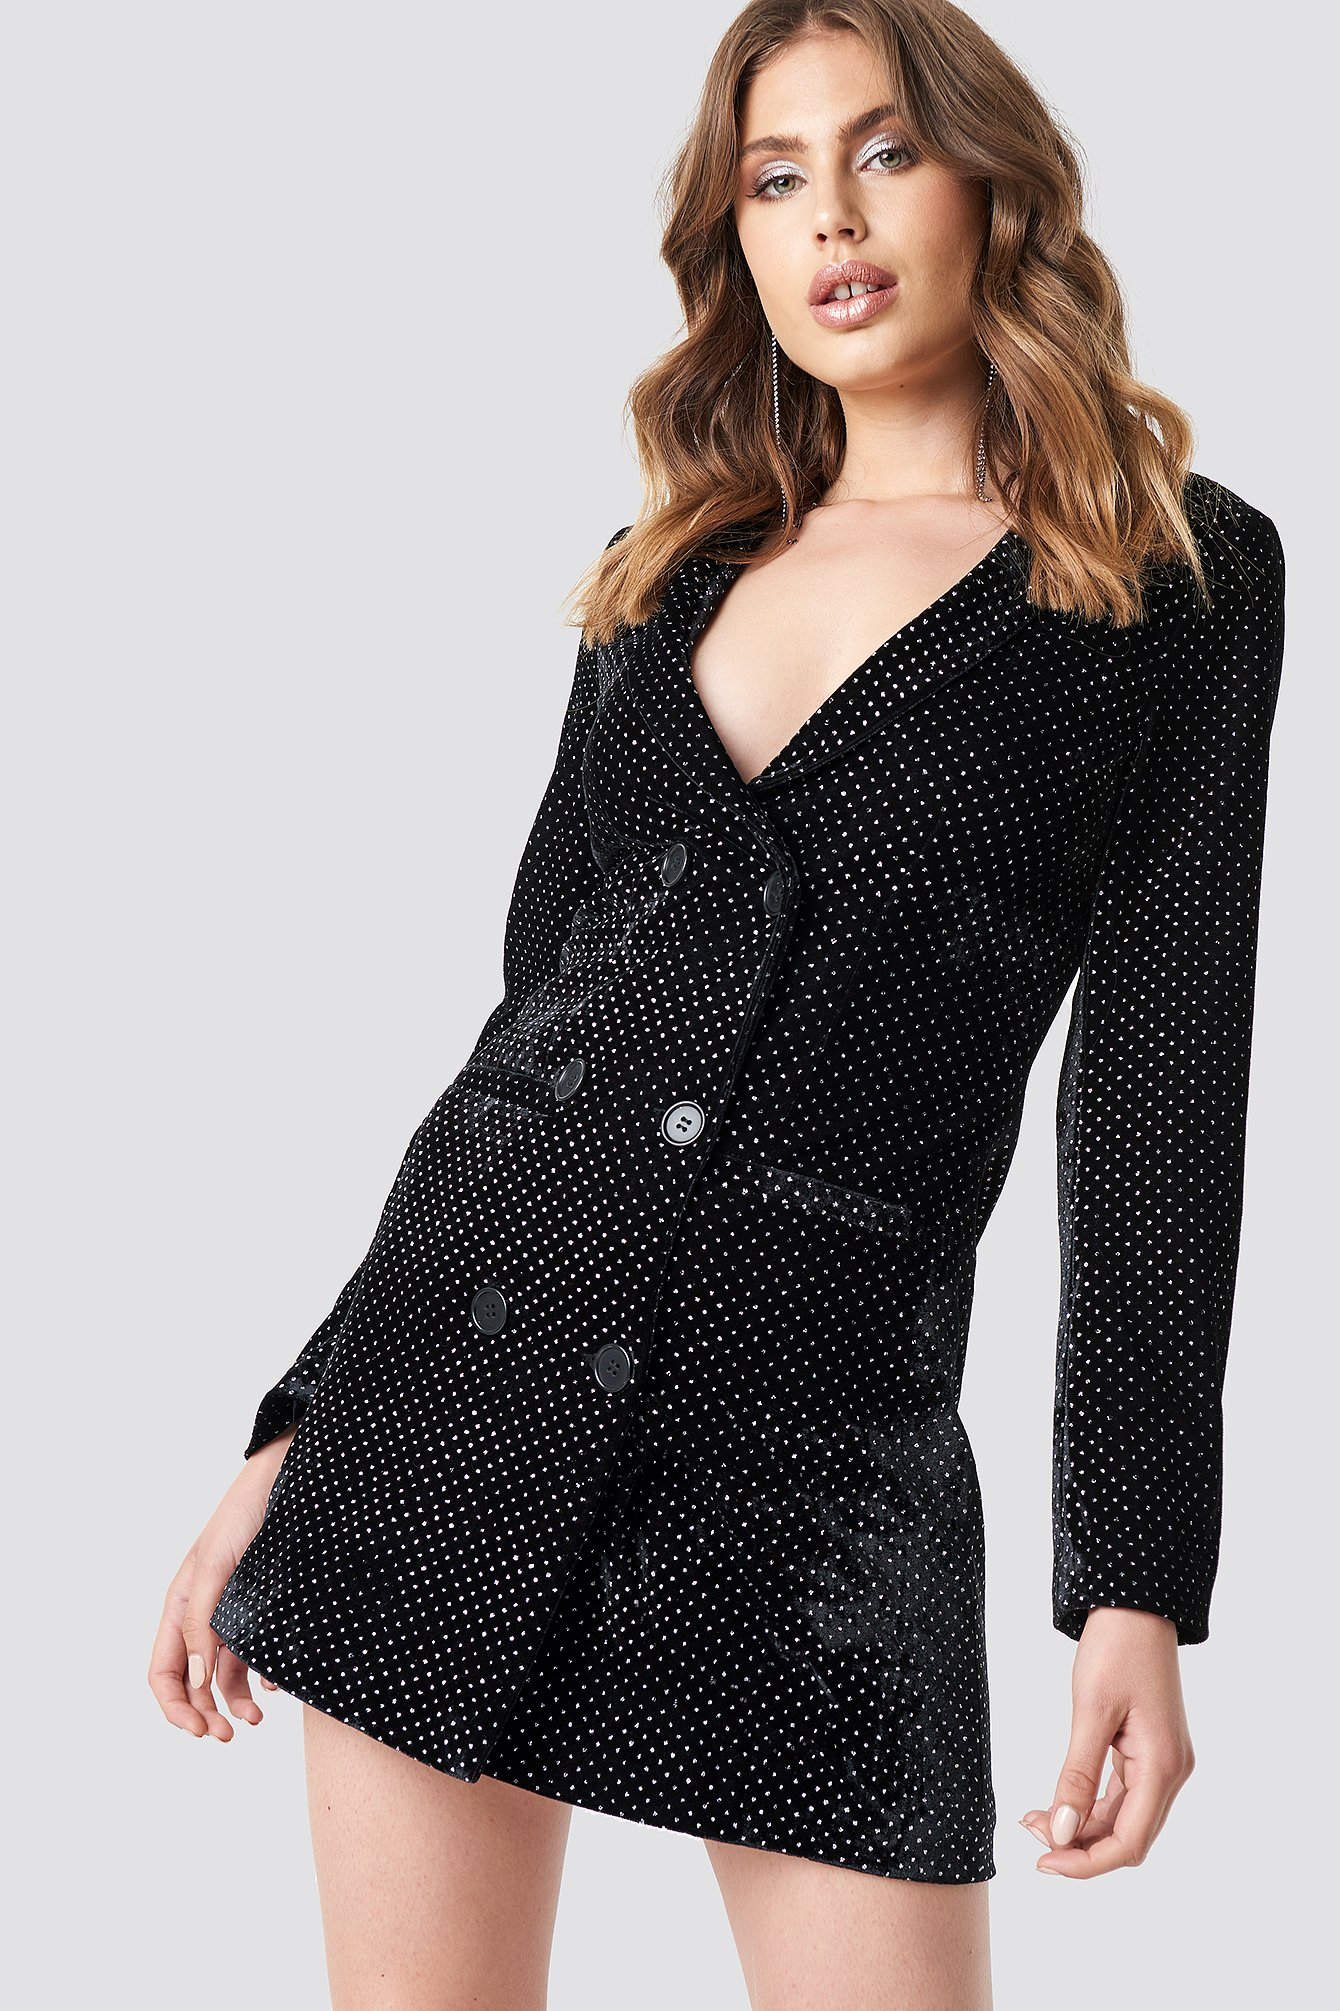 Black Sparkling Velvet Blazer Dress